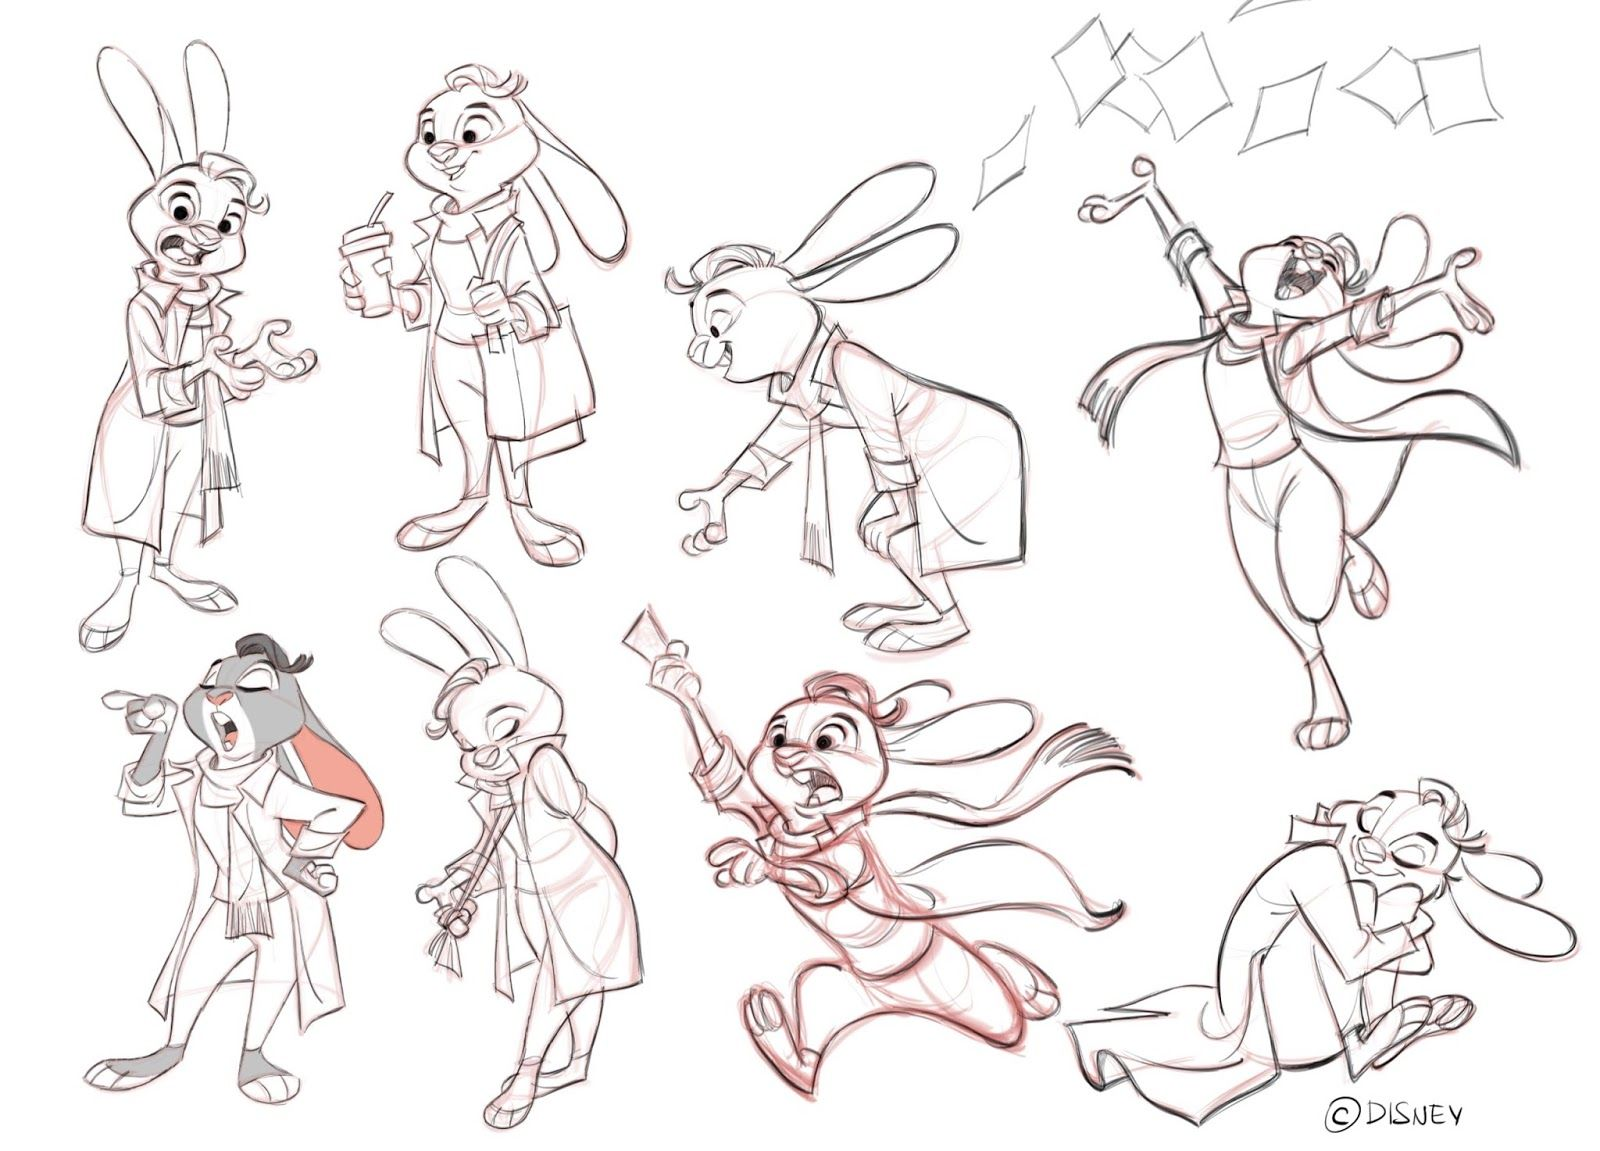 Super Character Design Poses Pdf : Cool art poses from borja montoro by zootopiafanart on